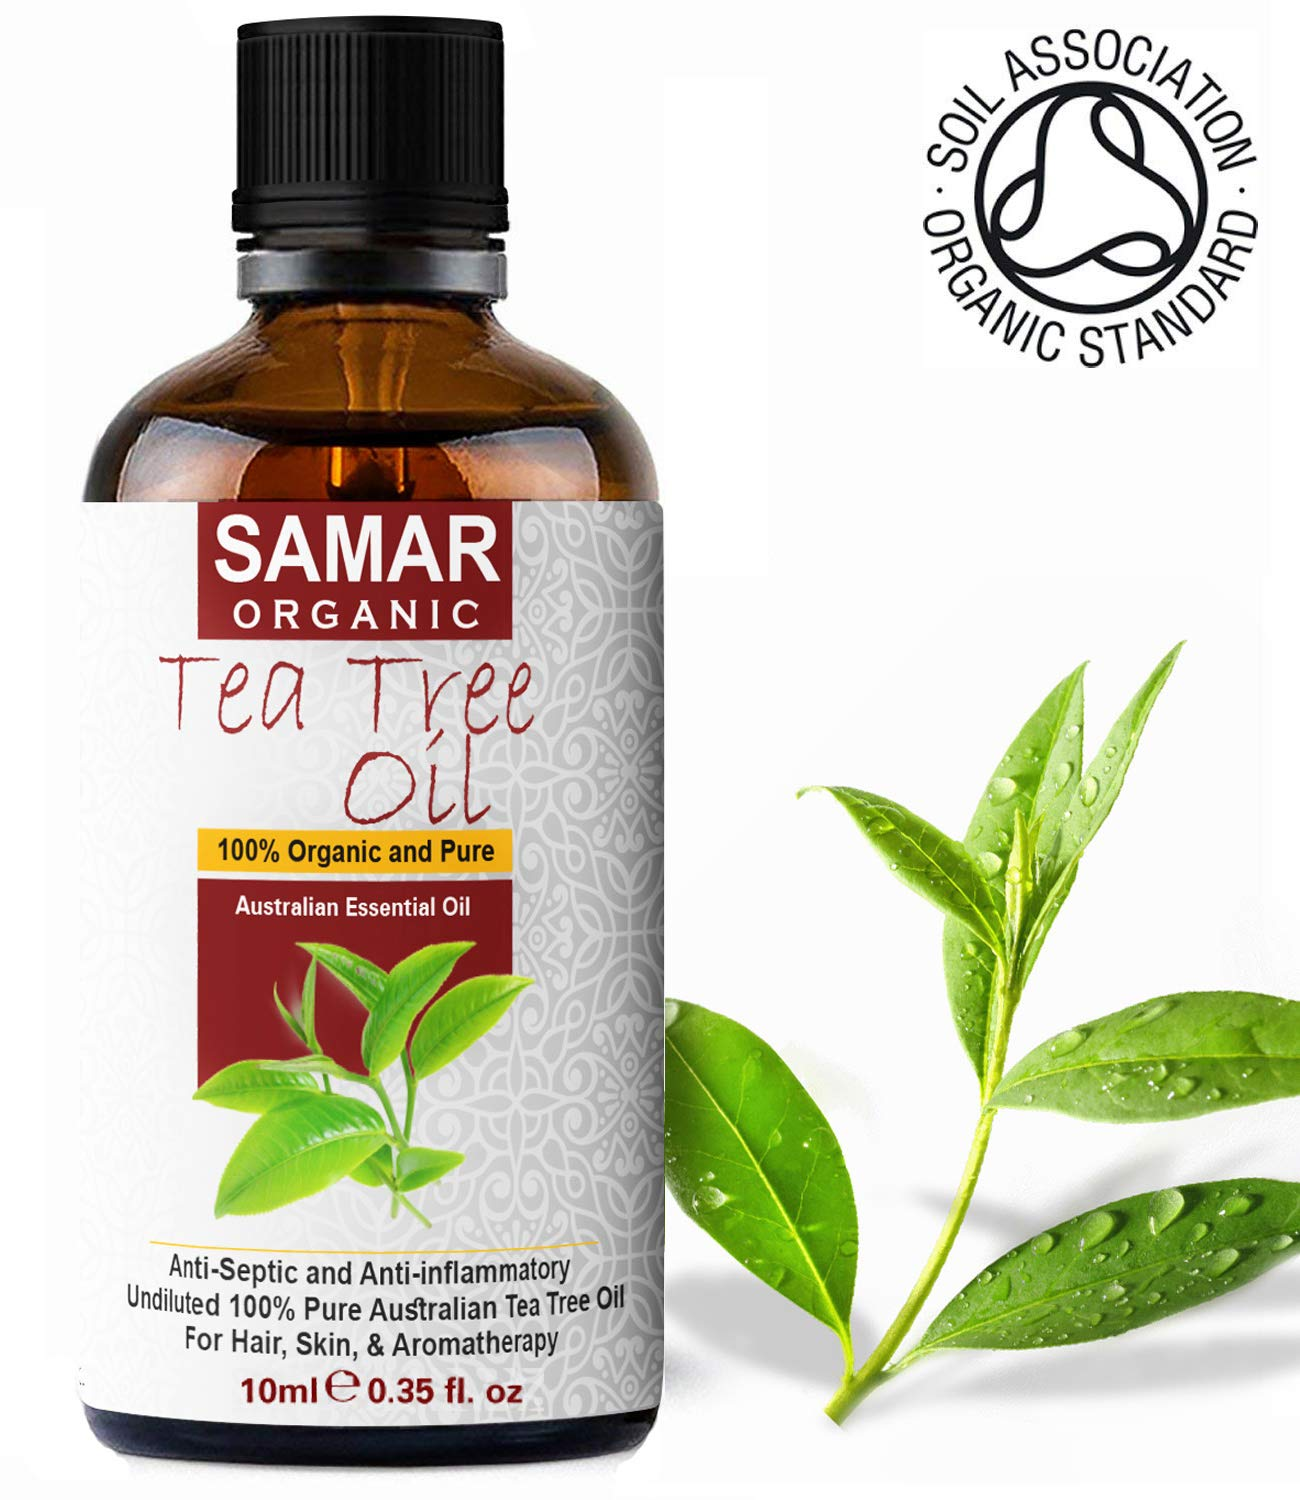 Tea Tree Oil - Premium Quality 100% Pure and Certified Organic Australian Tea Tree Oil Natural, Vegan & undiluted, Use in Antiseptic, Aromatherapy, Massage Blend and Skin Care Treatment – 10ml